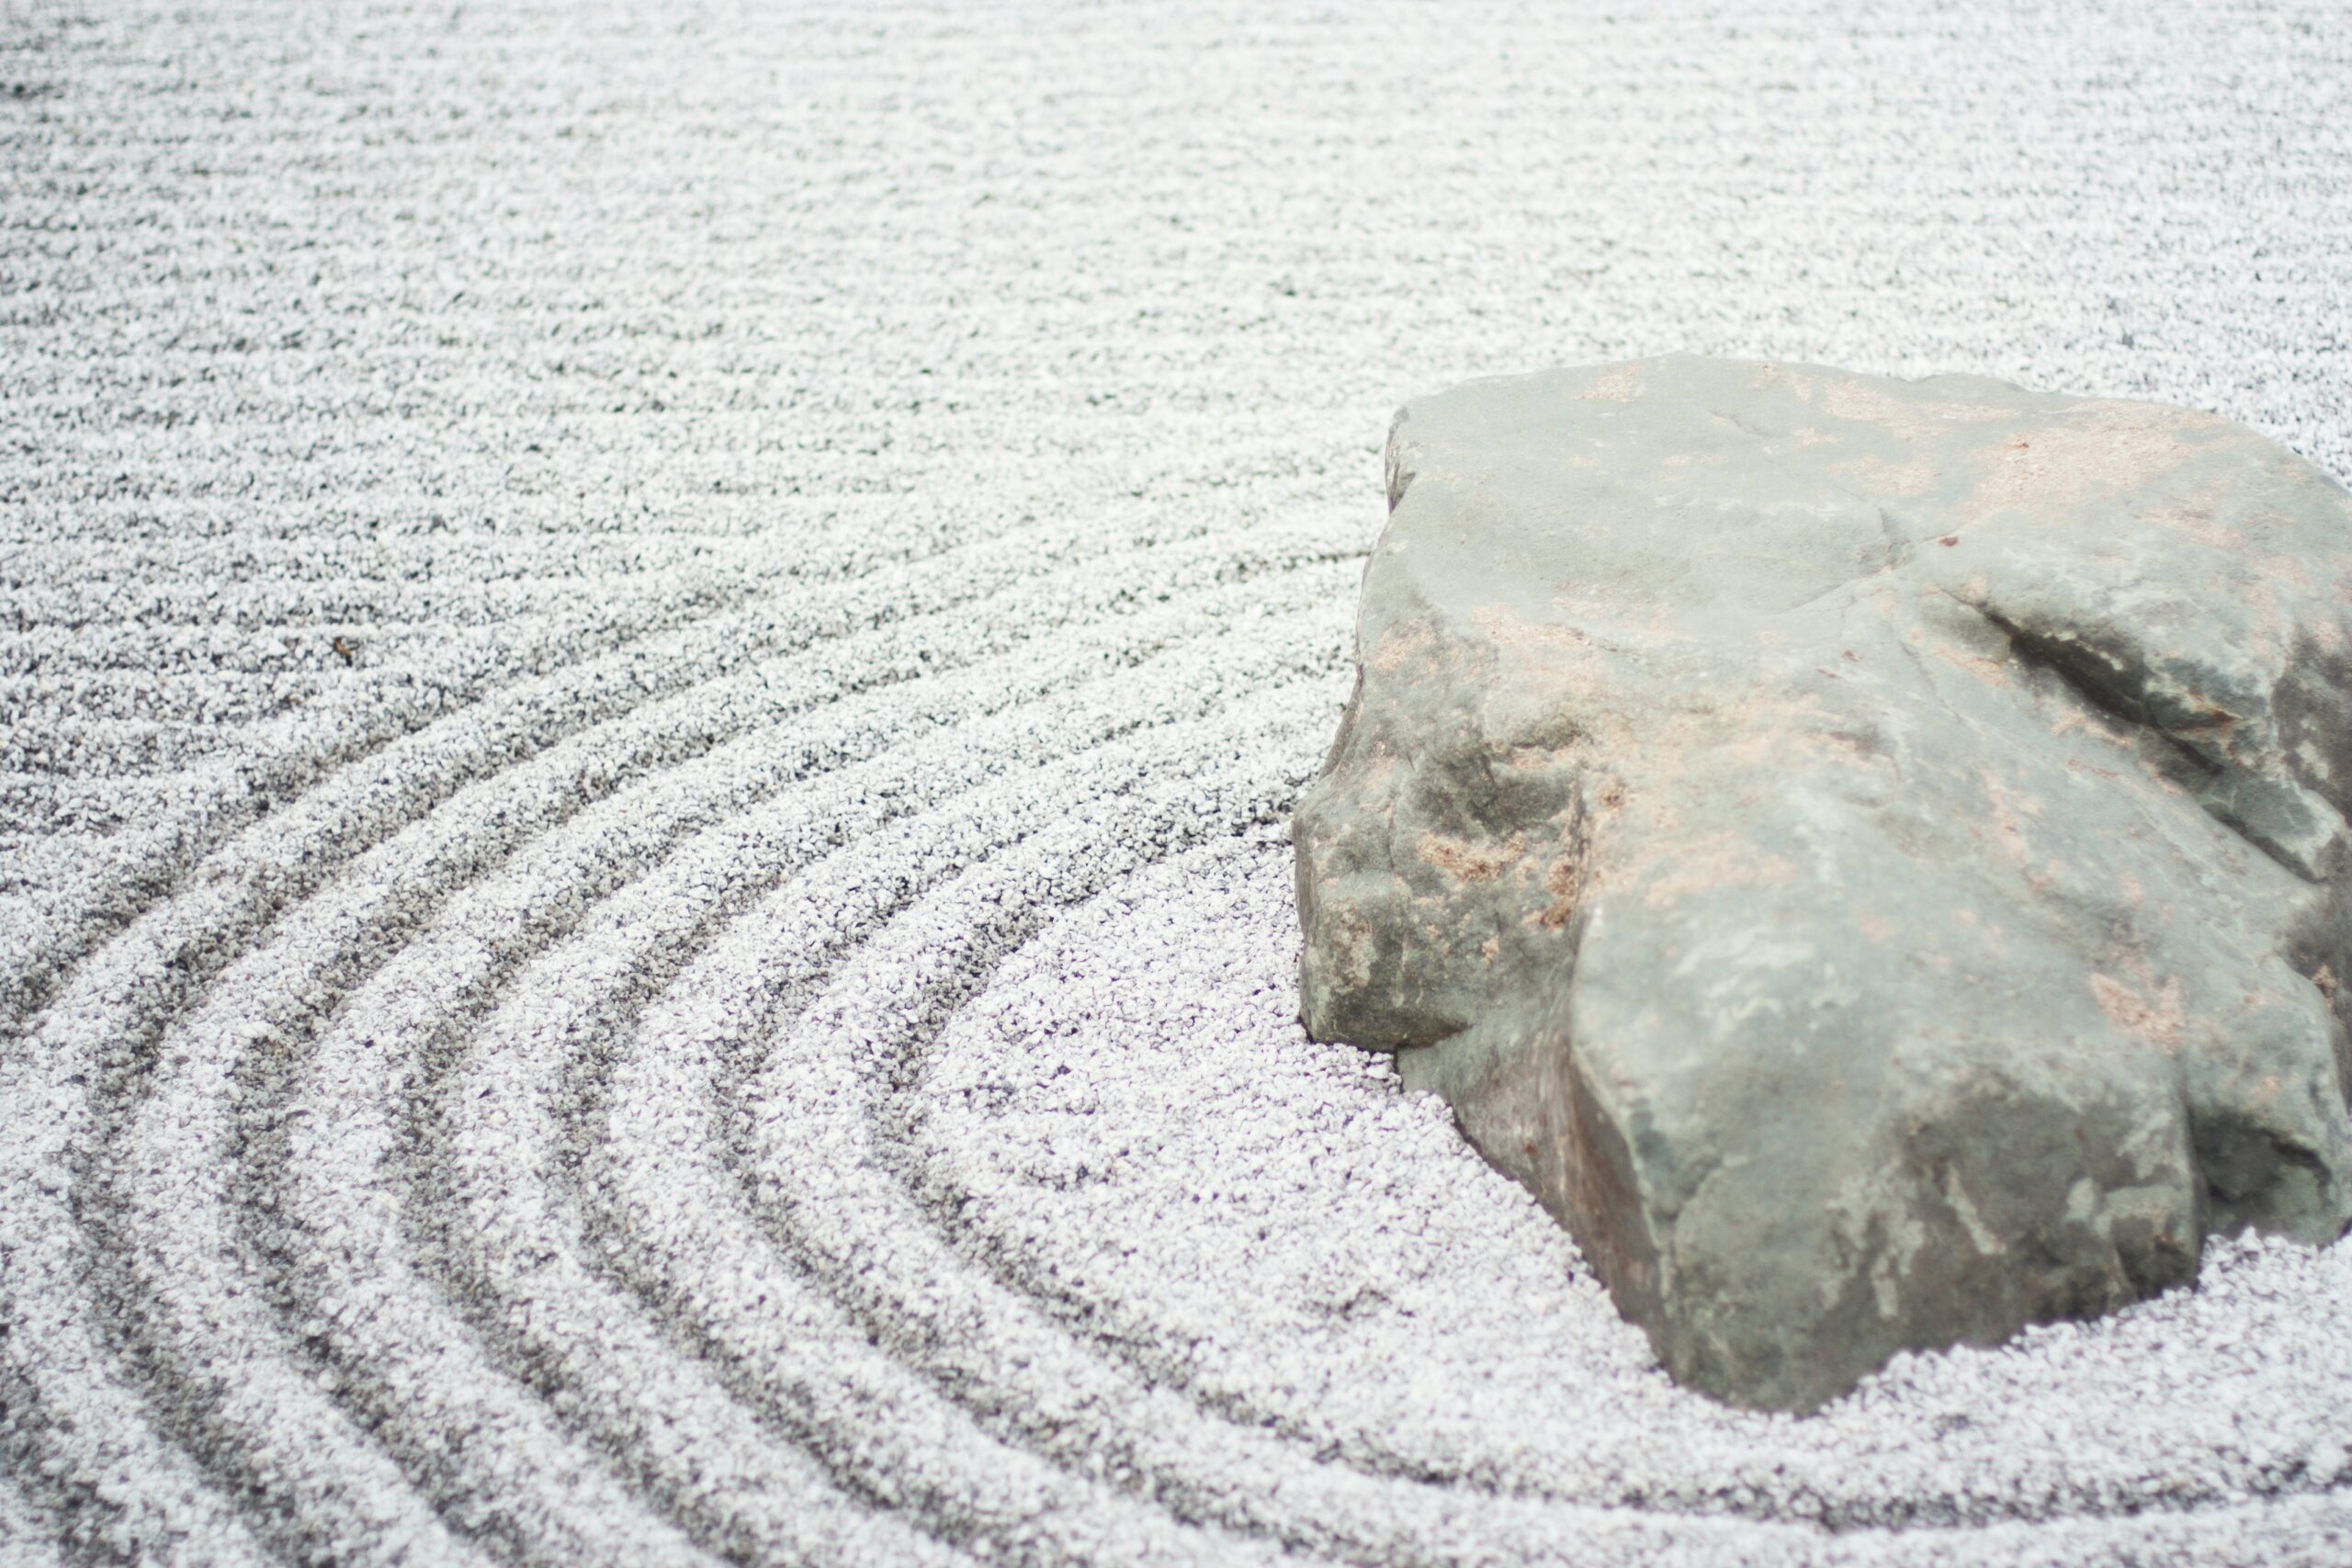 Zen Rock Garden with concentric circles in sand made by rake by Kari Shea on Unsplash